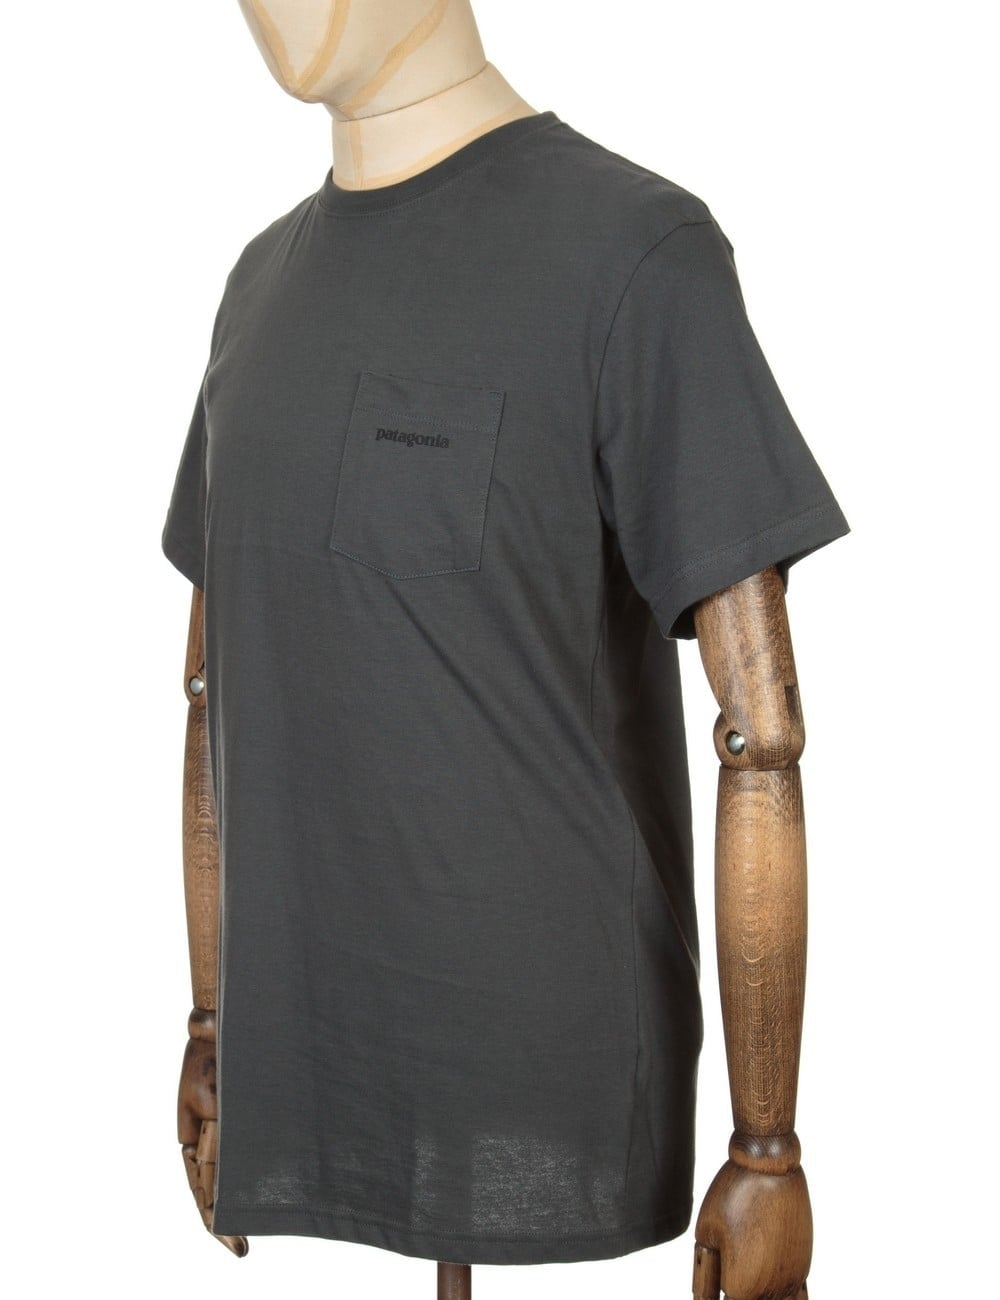 efc826e1 Patagonia P-6 Logo Pocket T-shirt - Forge Grey - Clothing from Fat ...